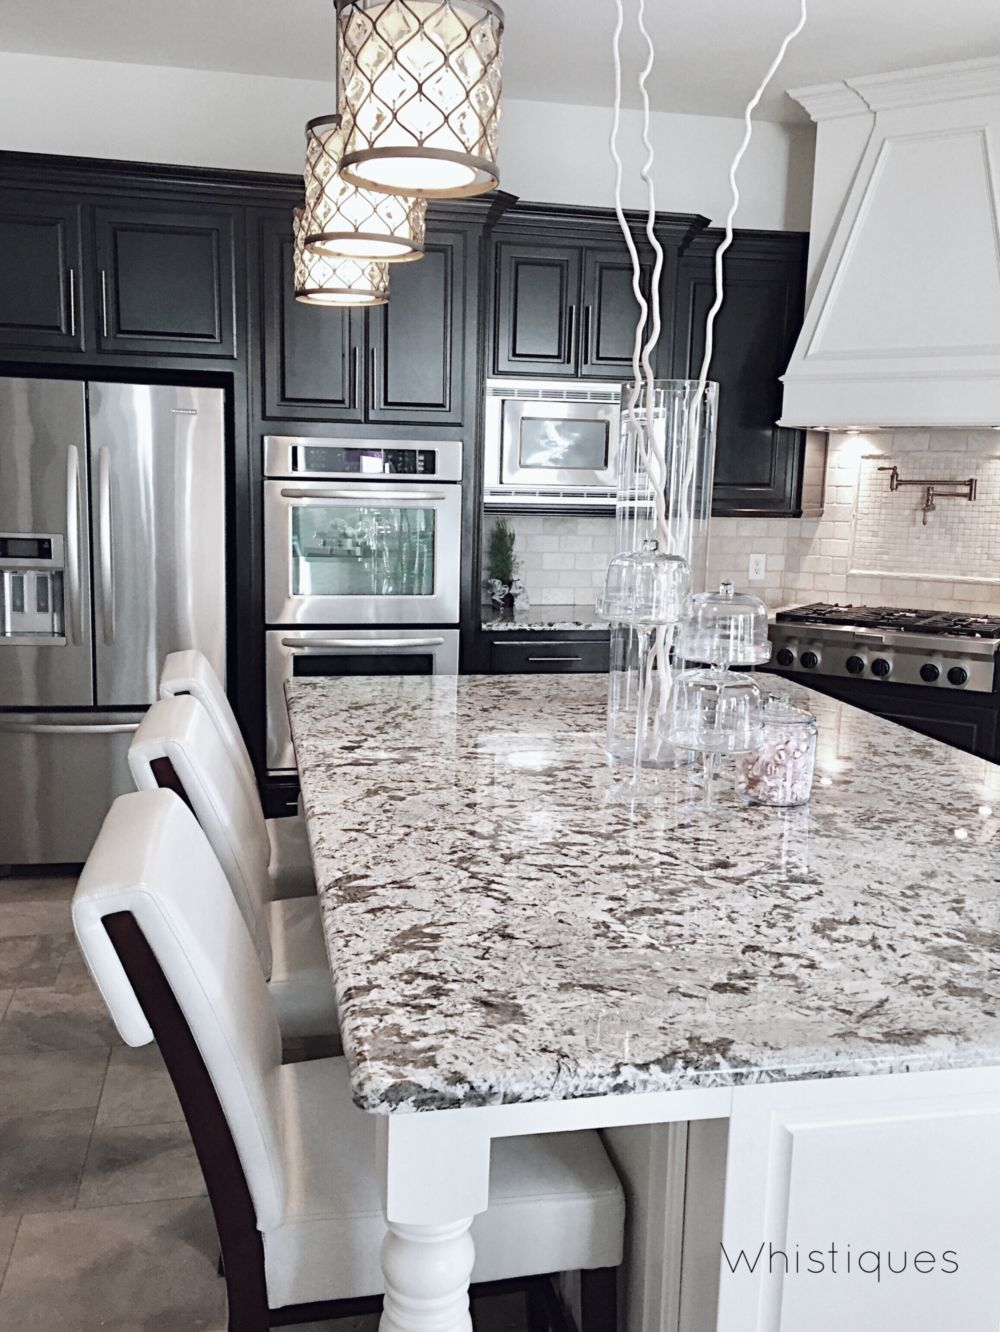 Cool 34 Kitchen Island With Grey And White Color Scheme Https